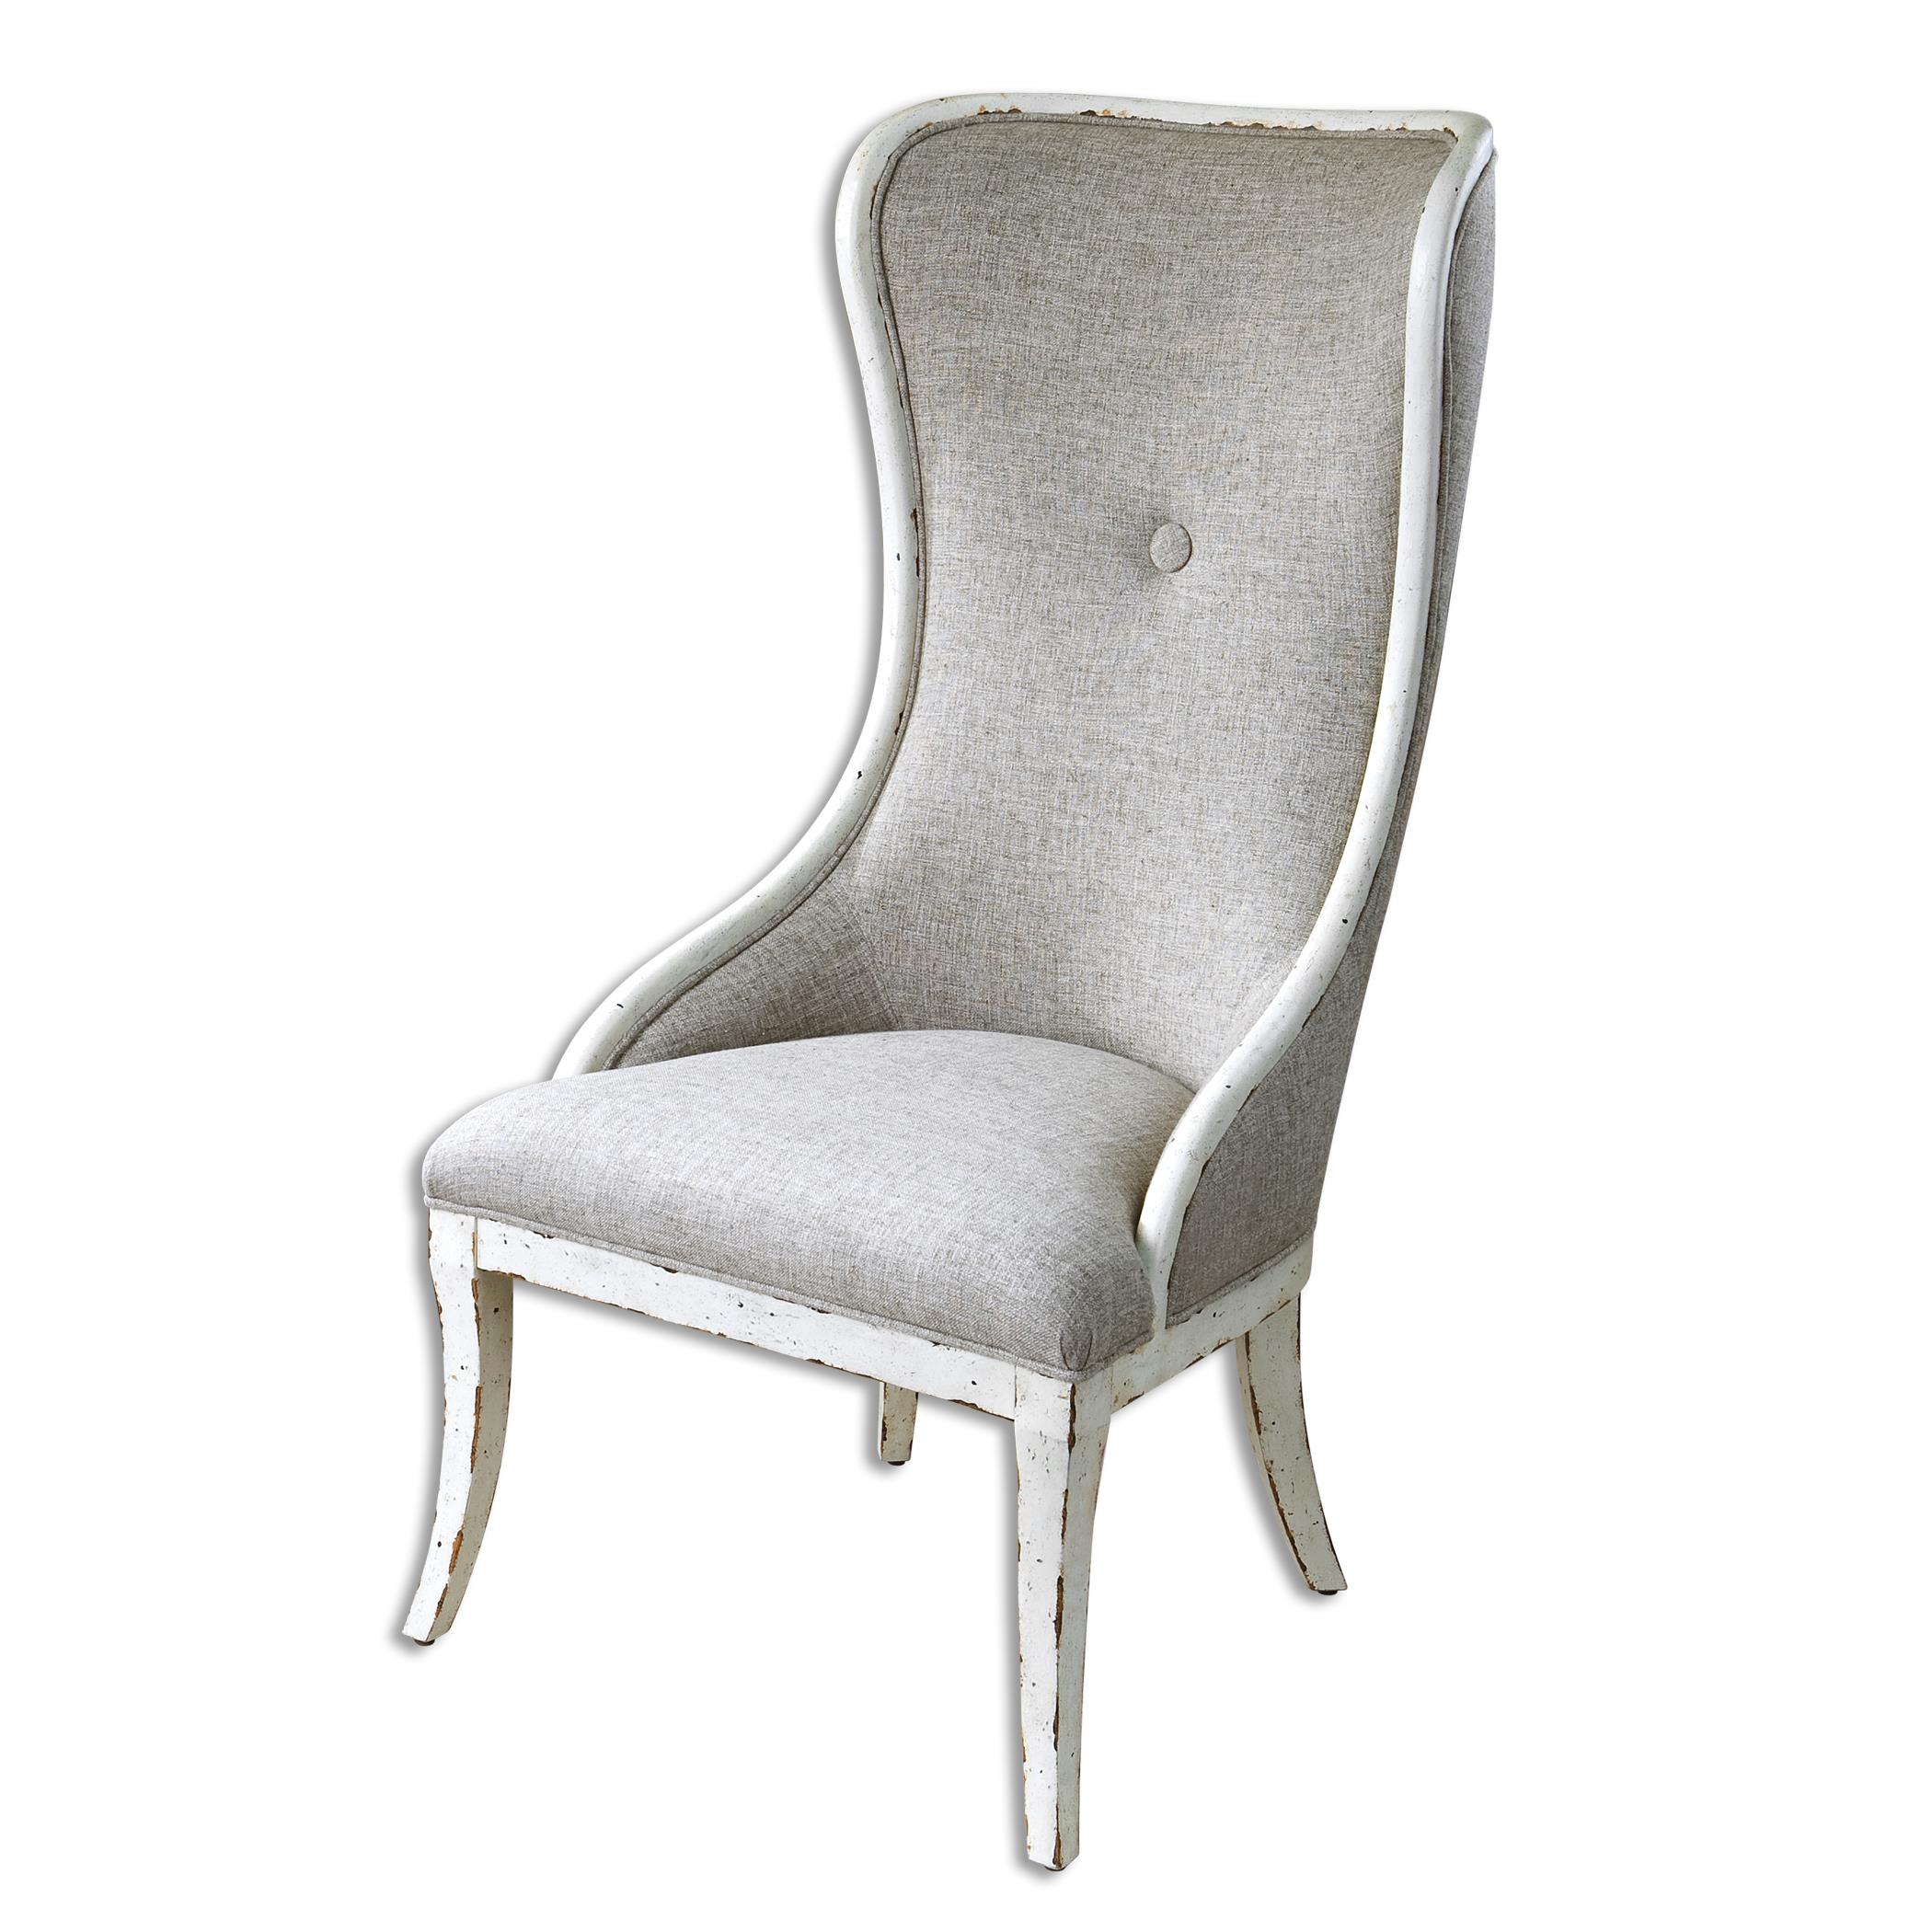 Uttermost Accent Furniture Selam Aged Wing Chair - Item Number: 23218